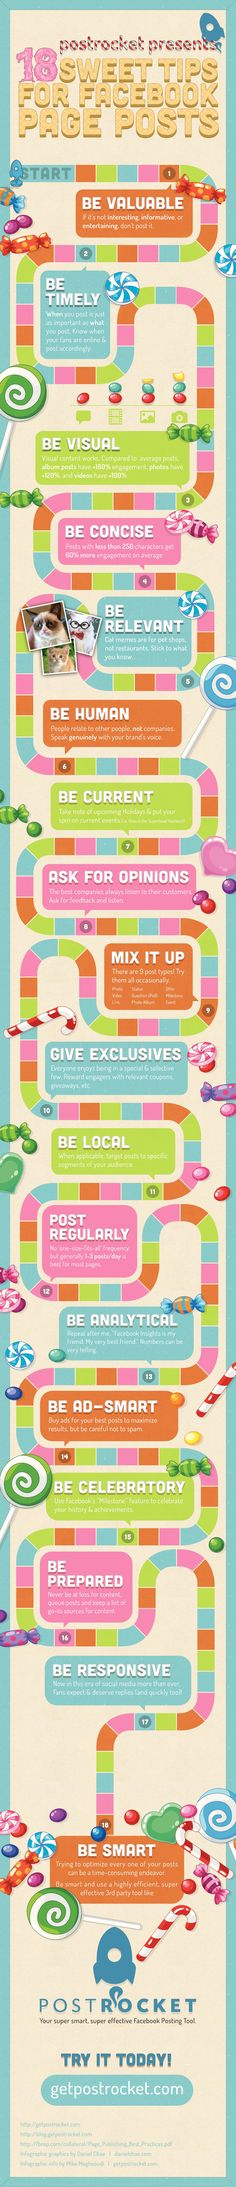 INFOGRAPHIC: 18 Sweet Tips For Facebook Page Posts @postrocket